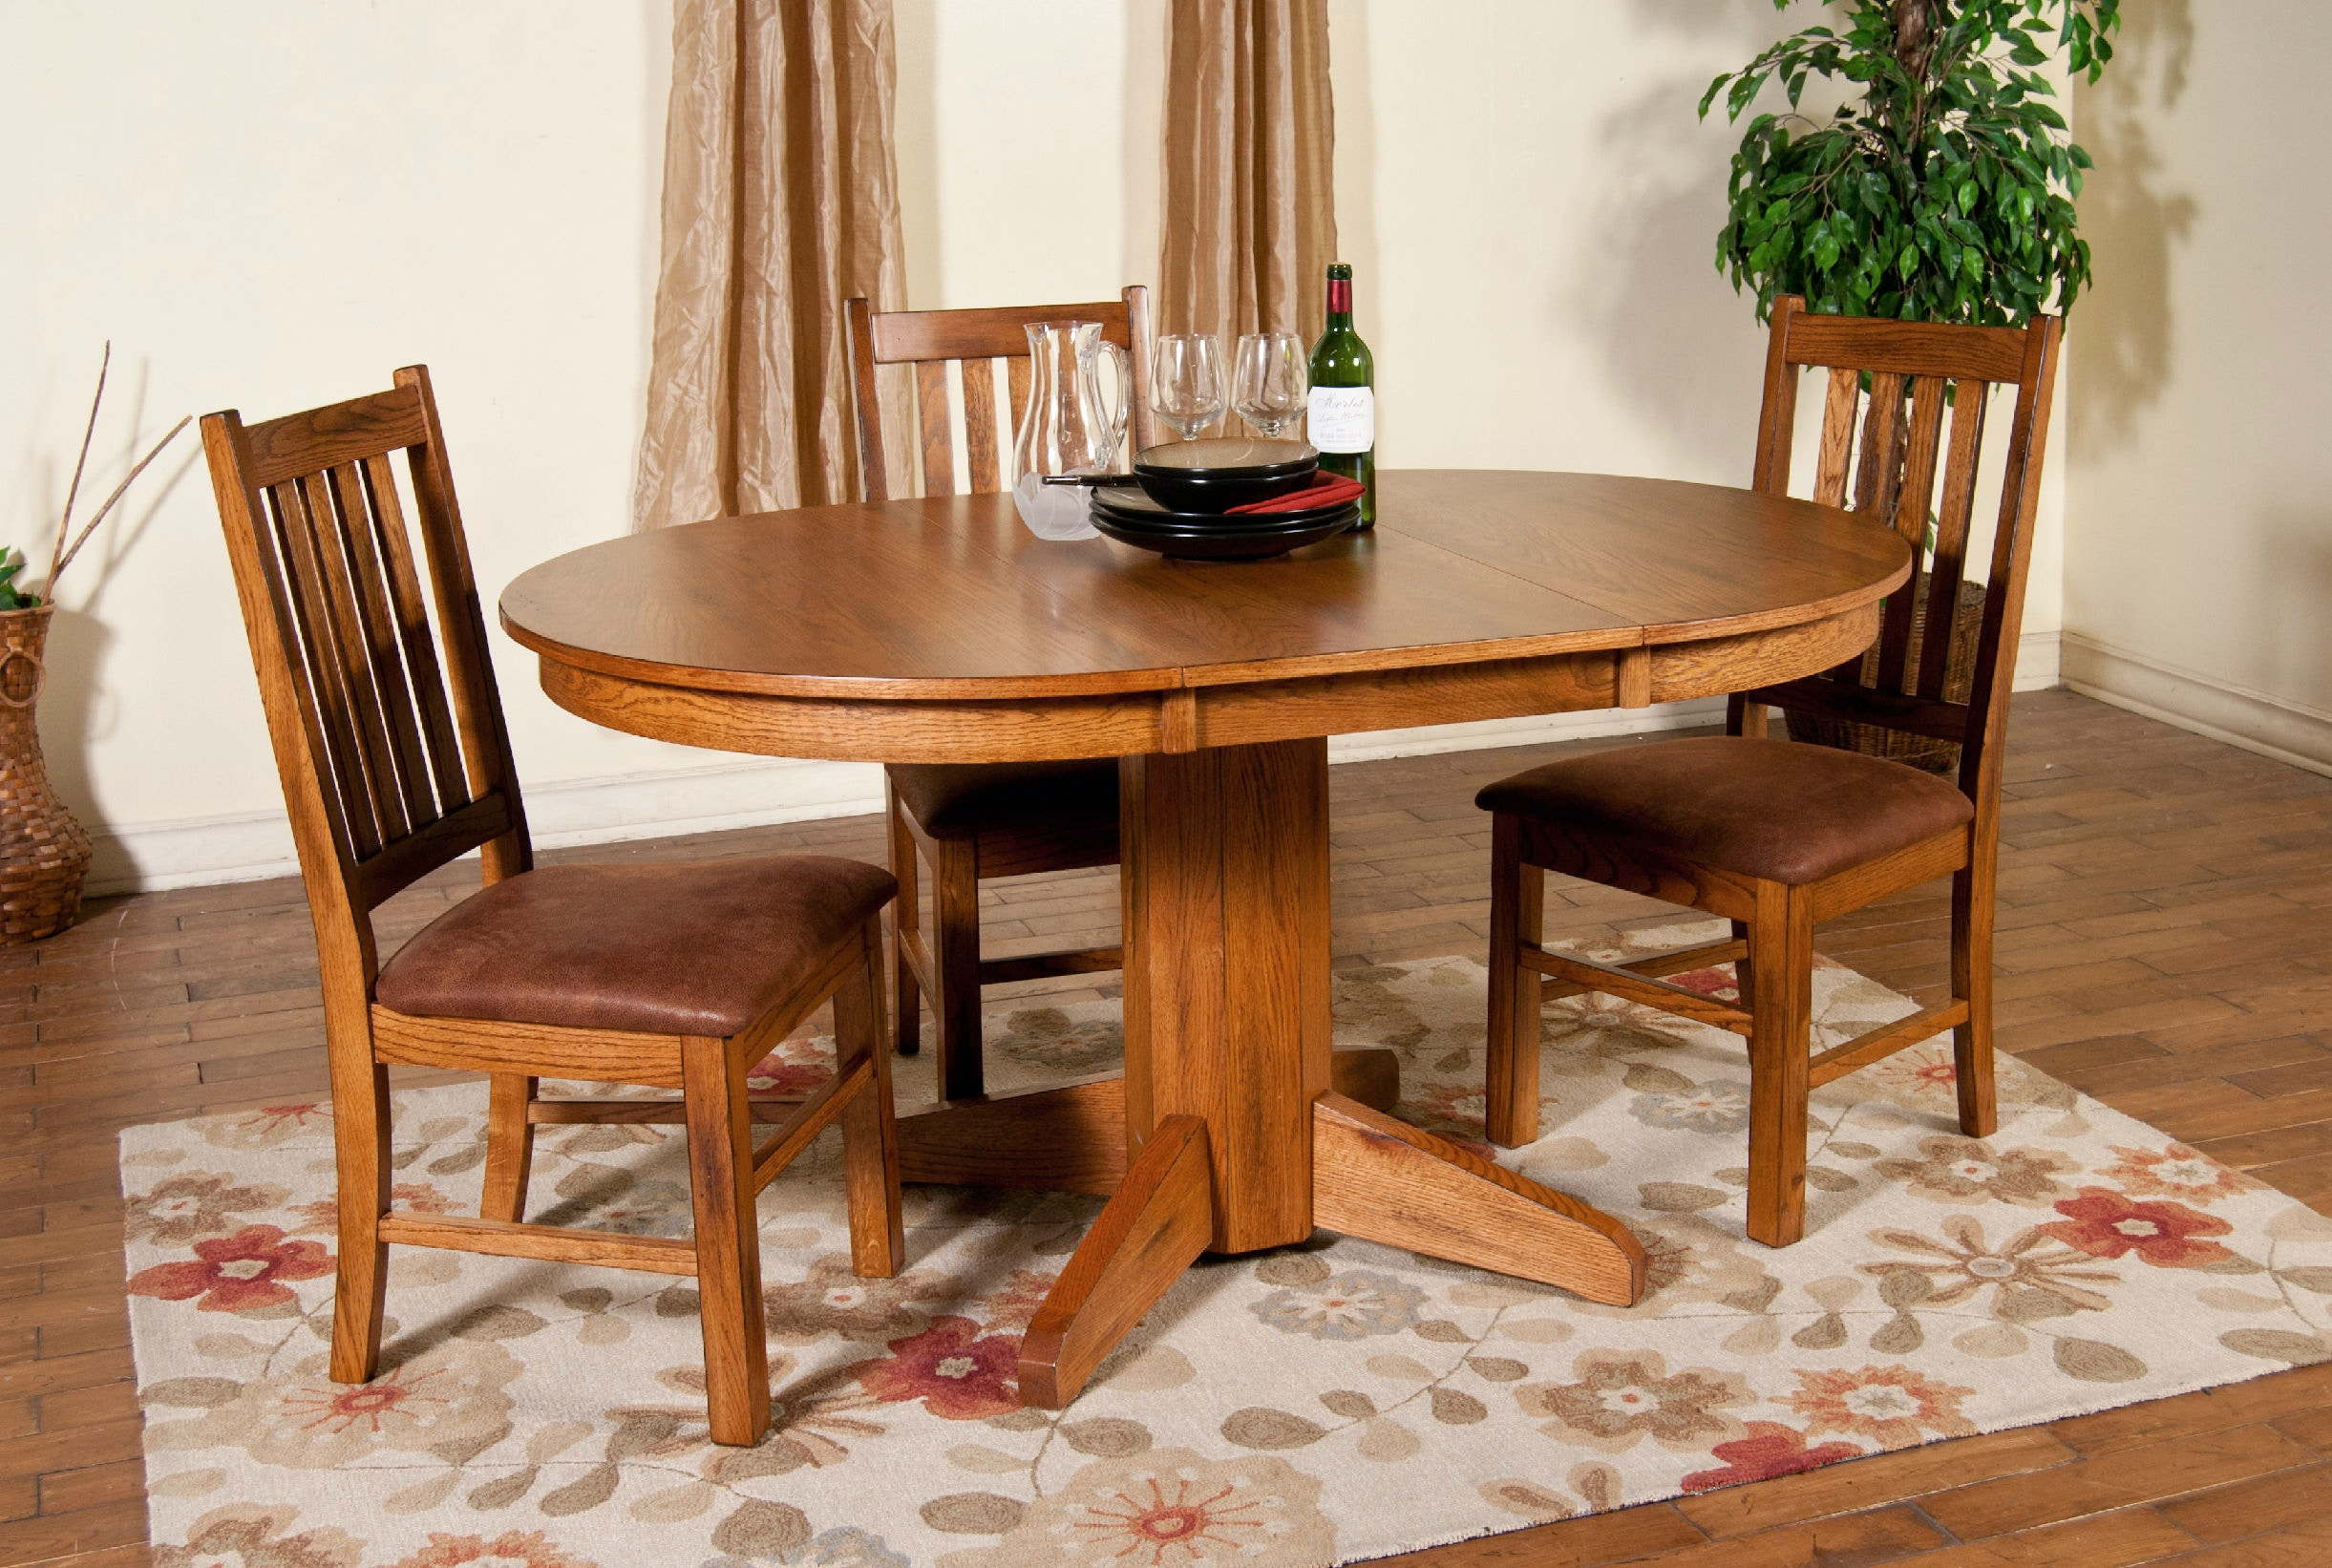 Sunny Designs Sedona Oval Extension Table 1114RO